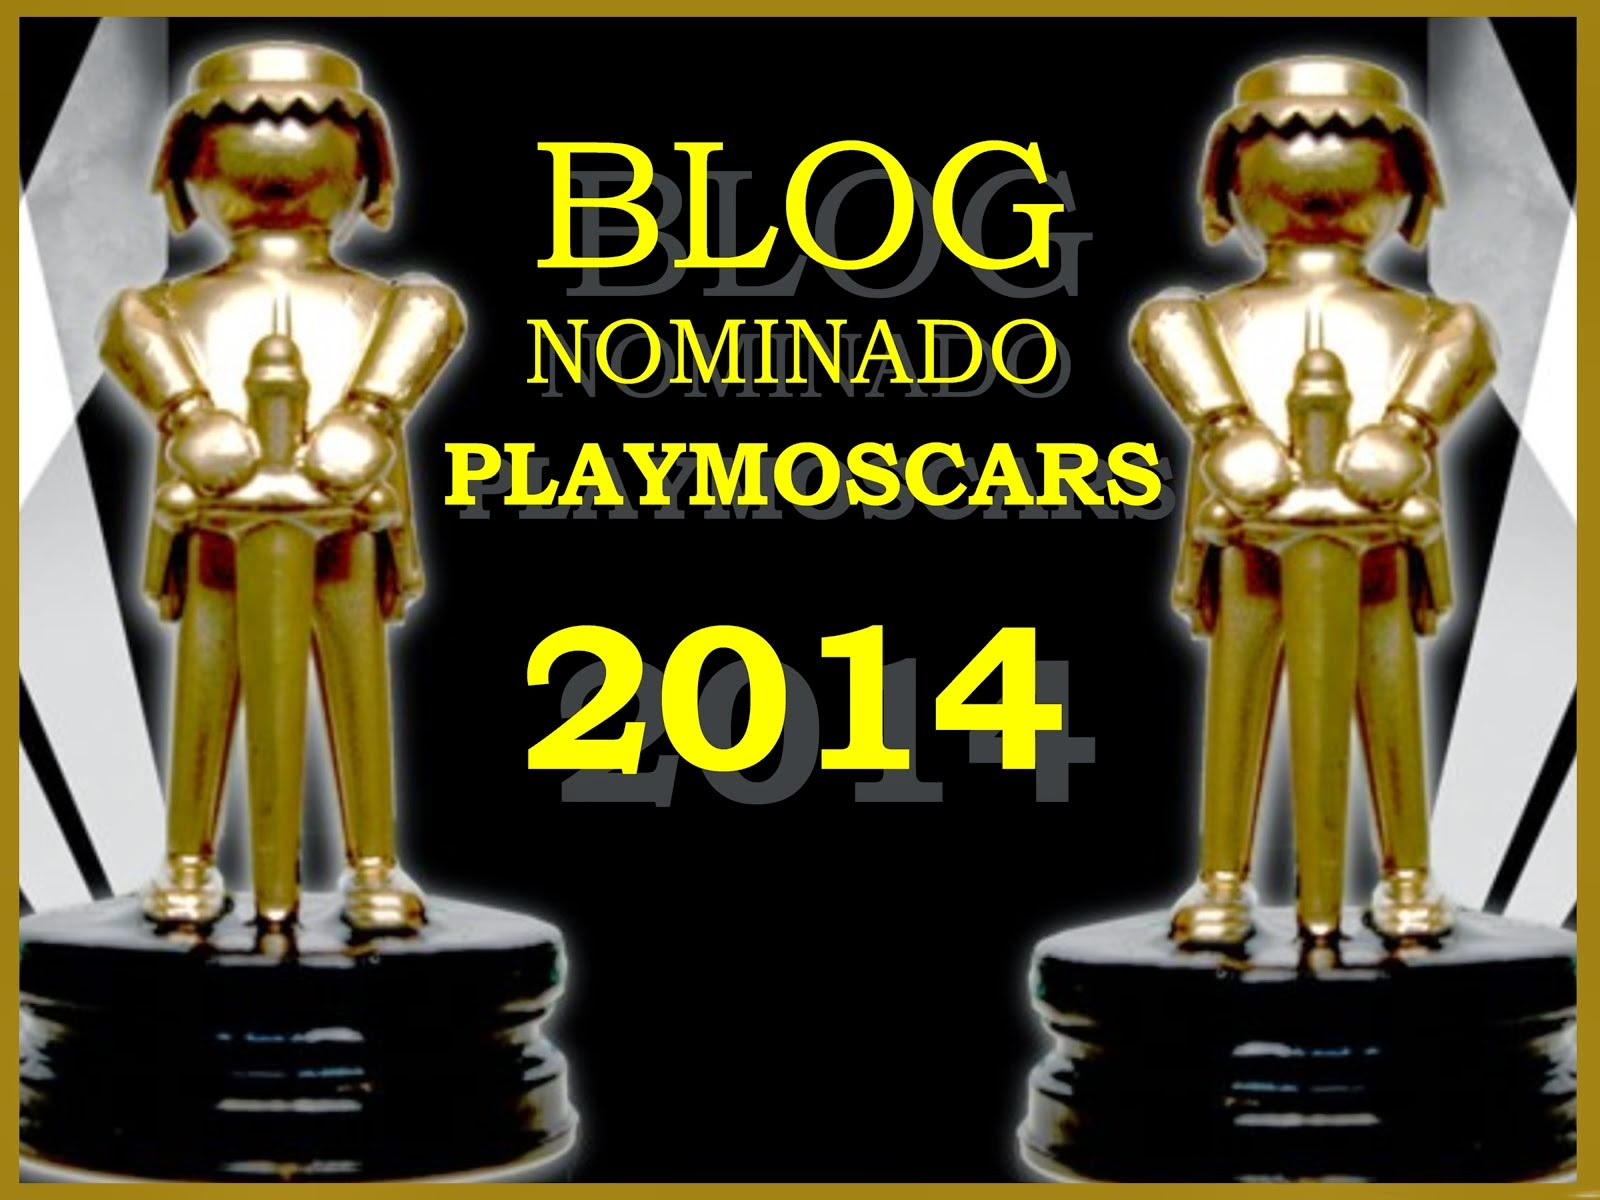 Blog nominado playmoscars 2014